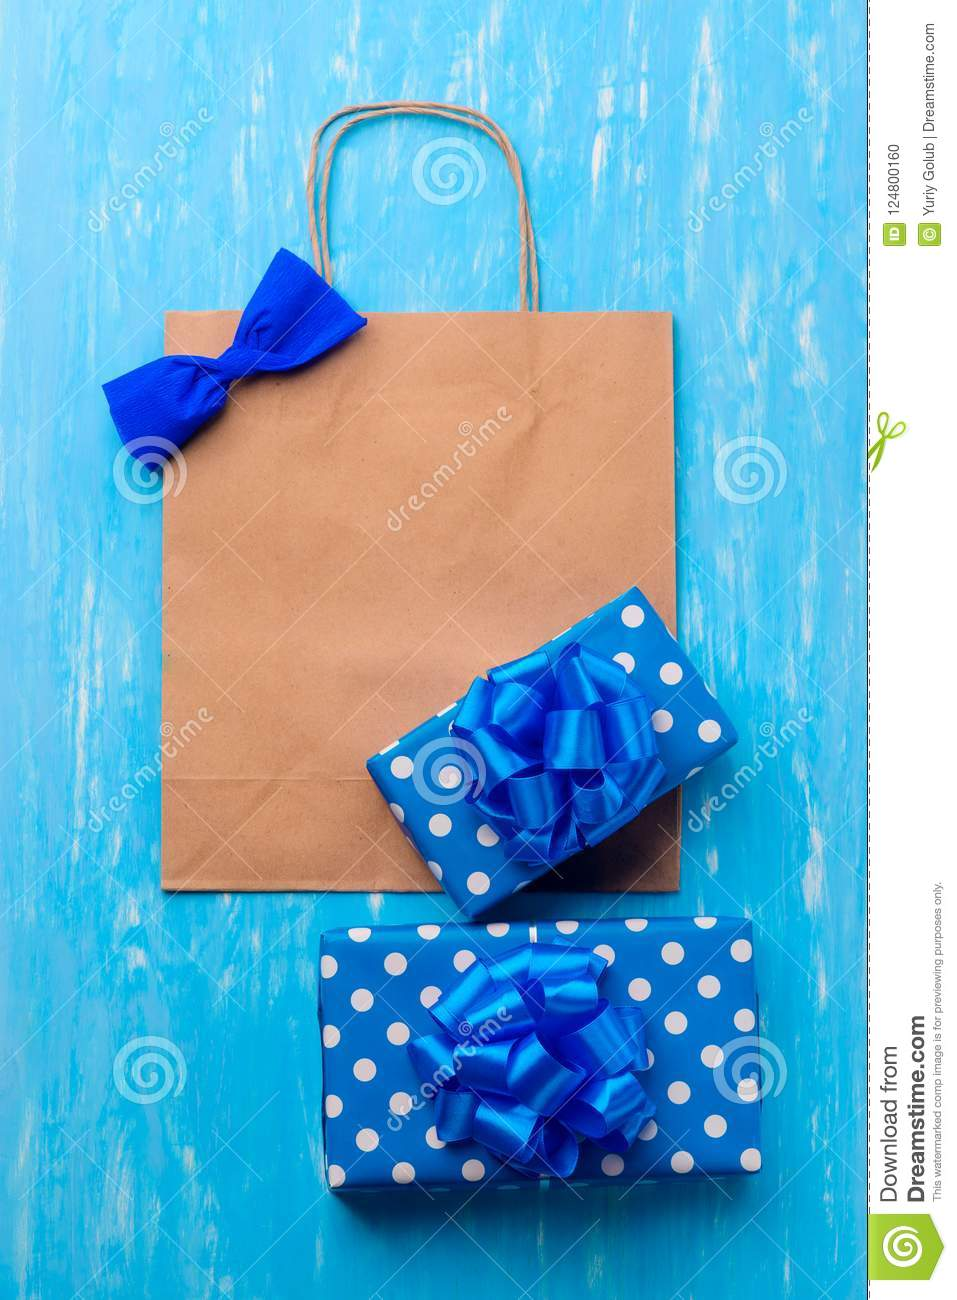 Vertical Happy Birthday Card Template Stock Photo Image Of